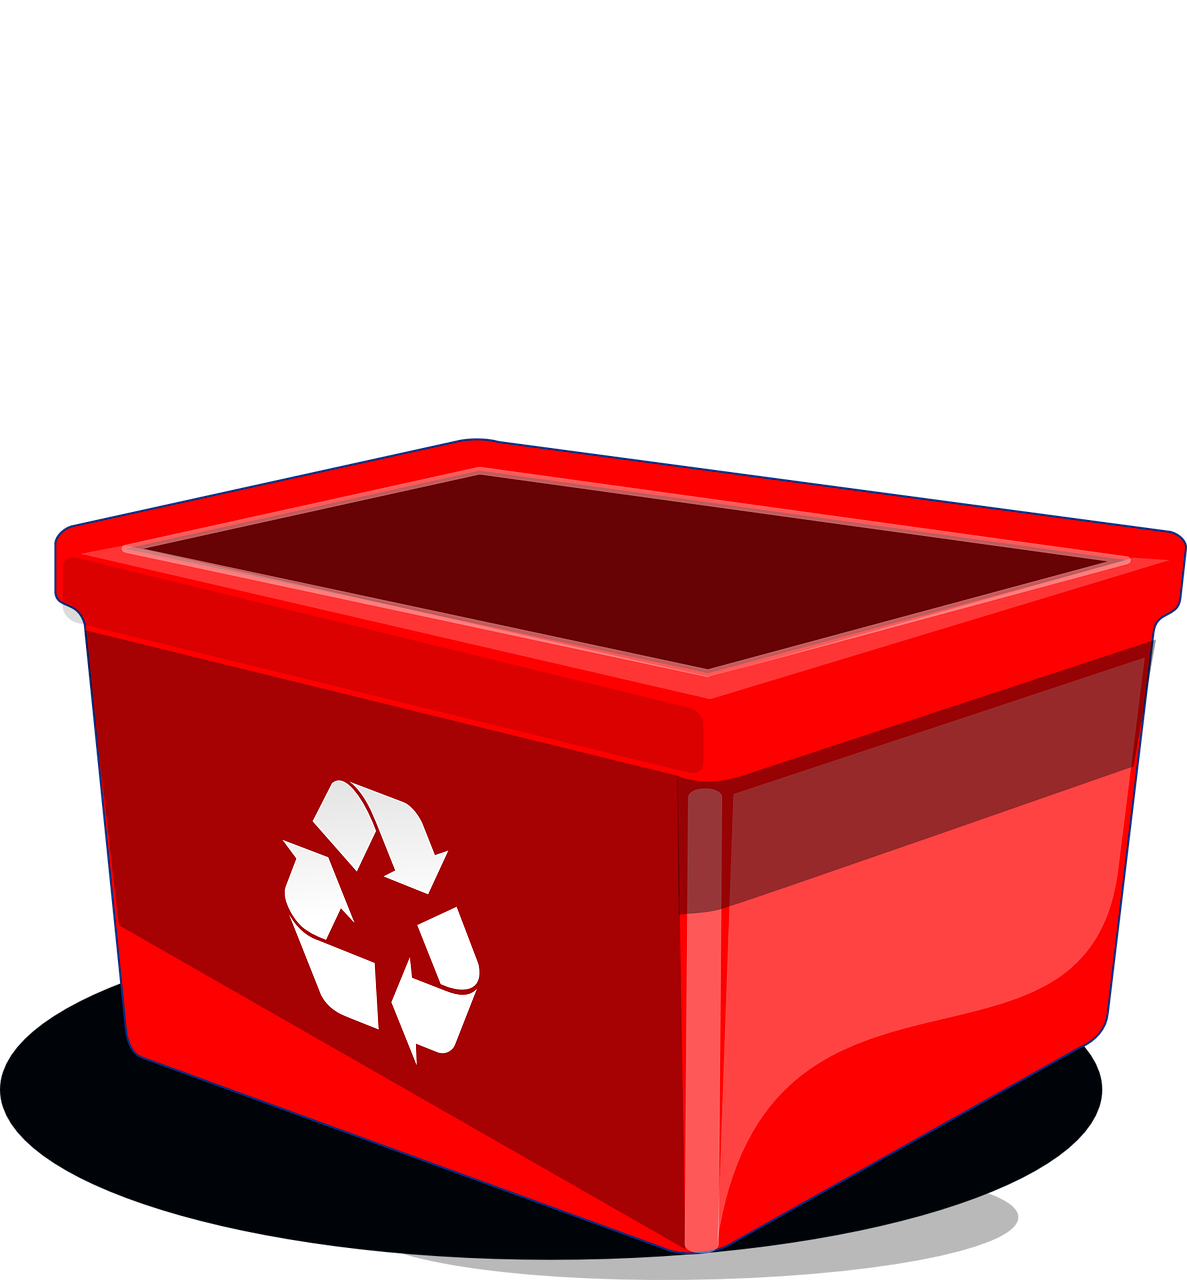 Bin Recycling Baskets Paper Rubbish Recycle Waste PNG Image